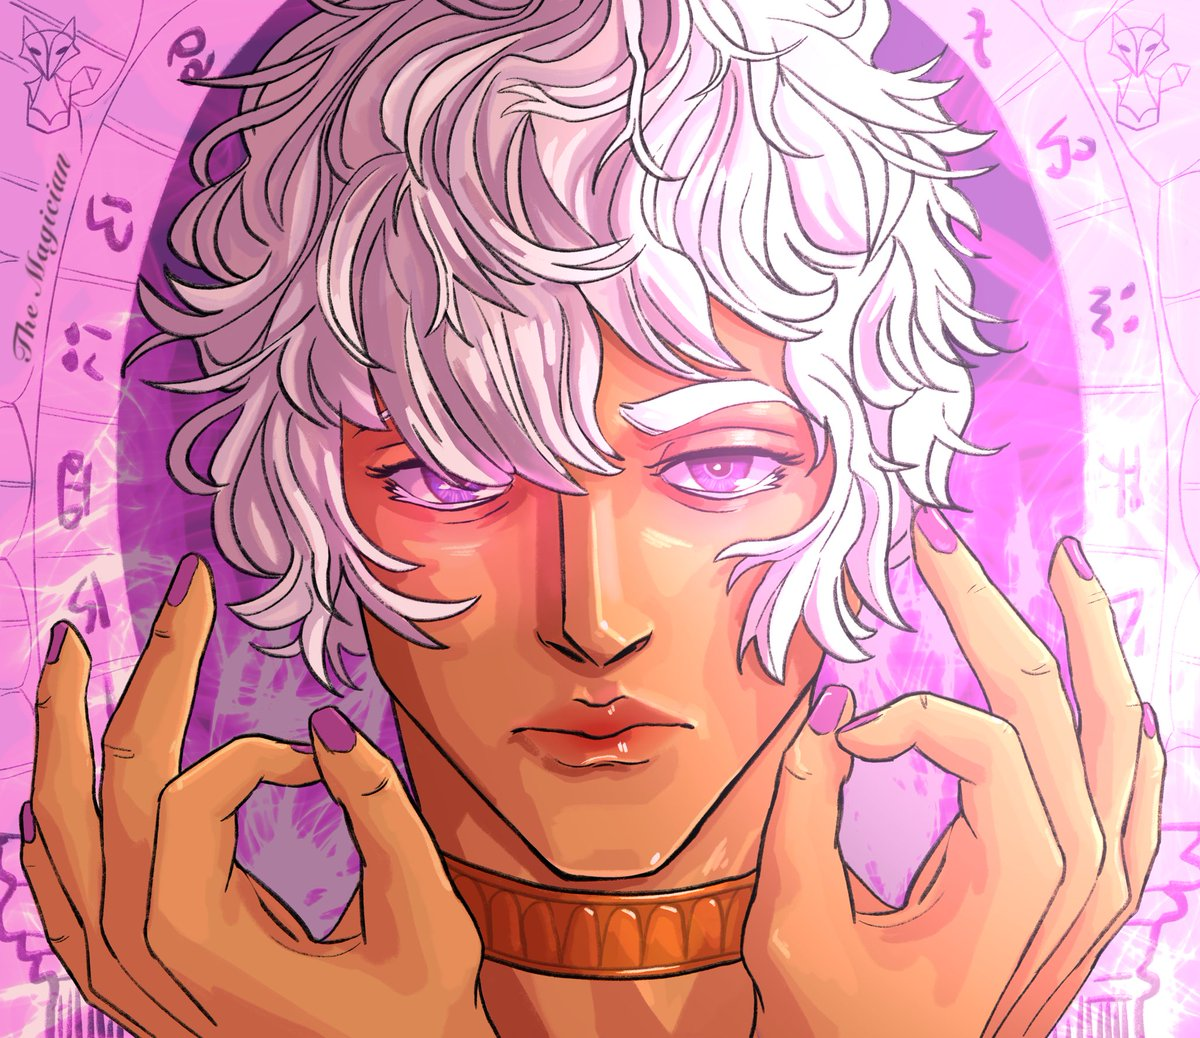 The Magician or The Devil? #TheArcanaGame #thearcanaasra #asra #asrathemagician #thearcana #juliandevorakpic.twitter.com/yVCsTAFIm3